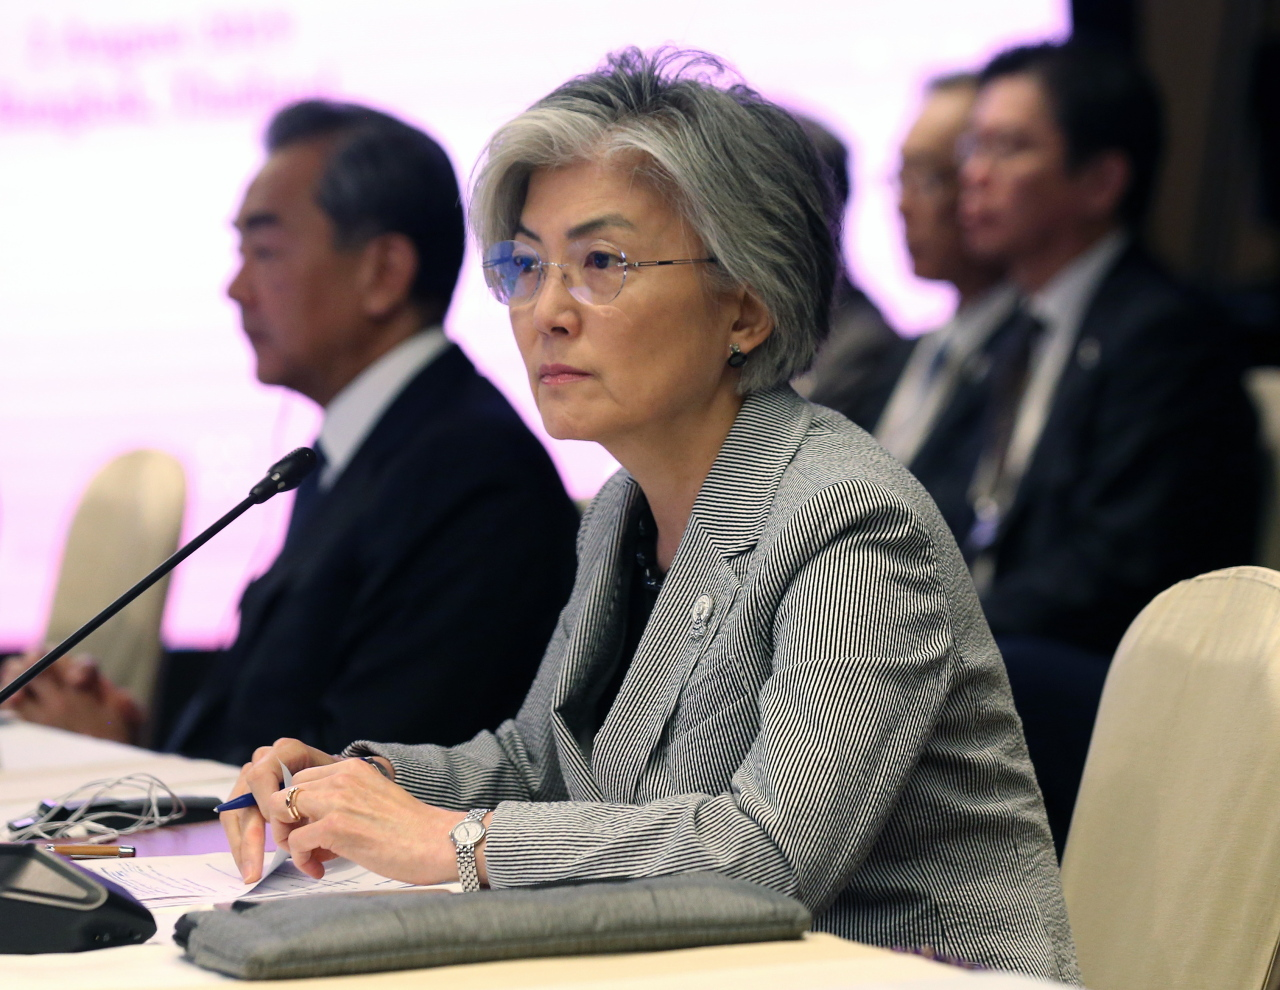 South Korean Foreign Minister Kang Kyung-wha takes part in the 20th ASEAN Plus Three Foreign Ministers' Meeting at the 52nd ASEAN Foreign Ministers' Meeting in Bangkok, Thailand, Aug. 2. (EPA-Yonhap)